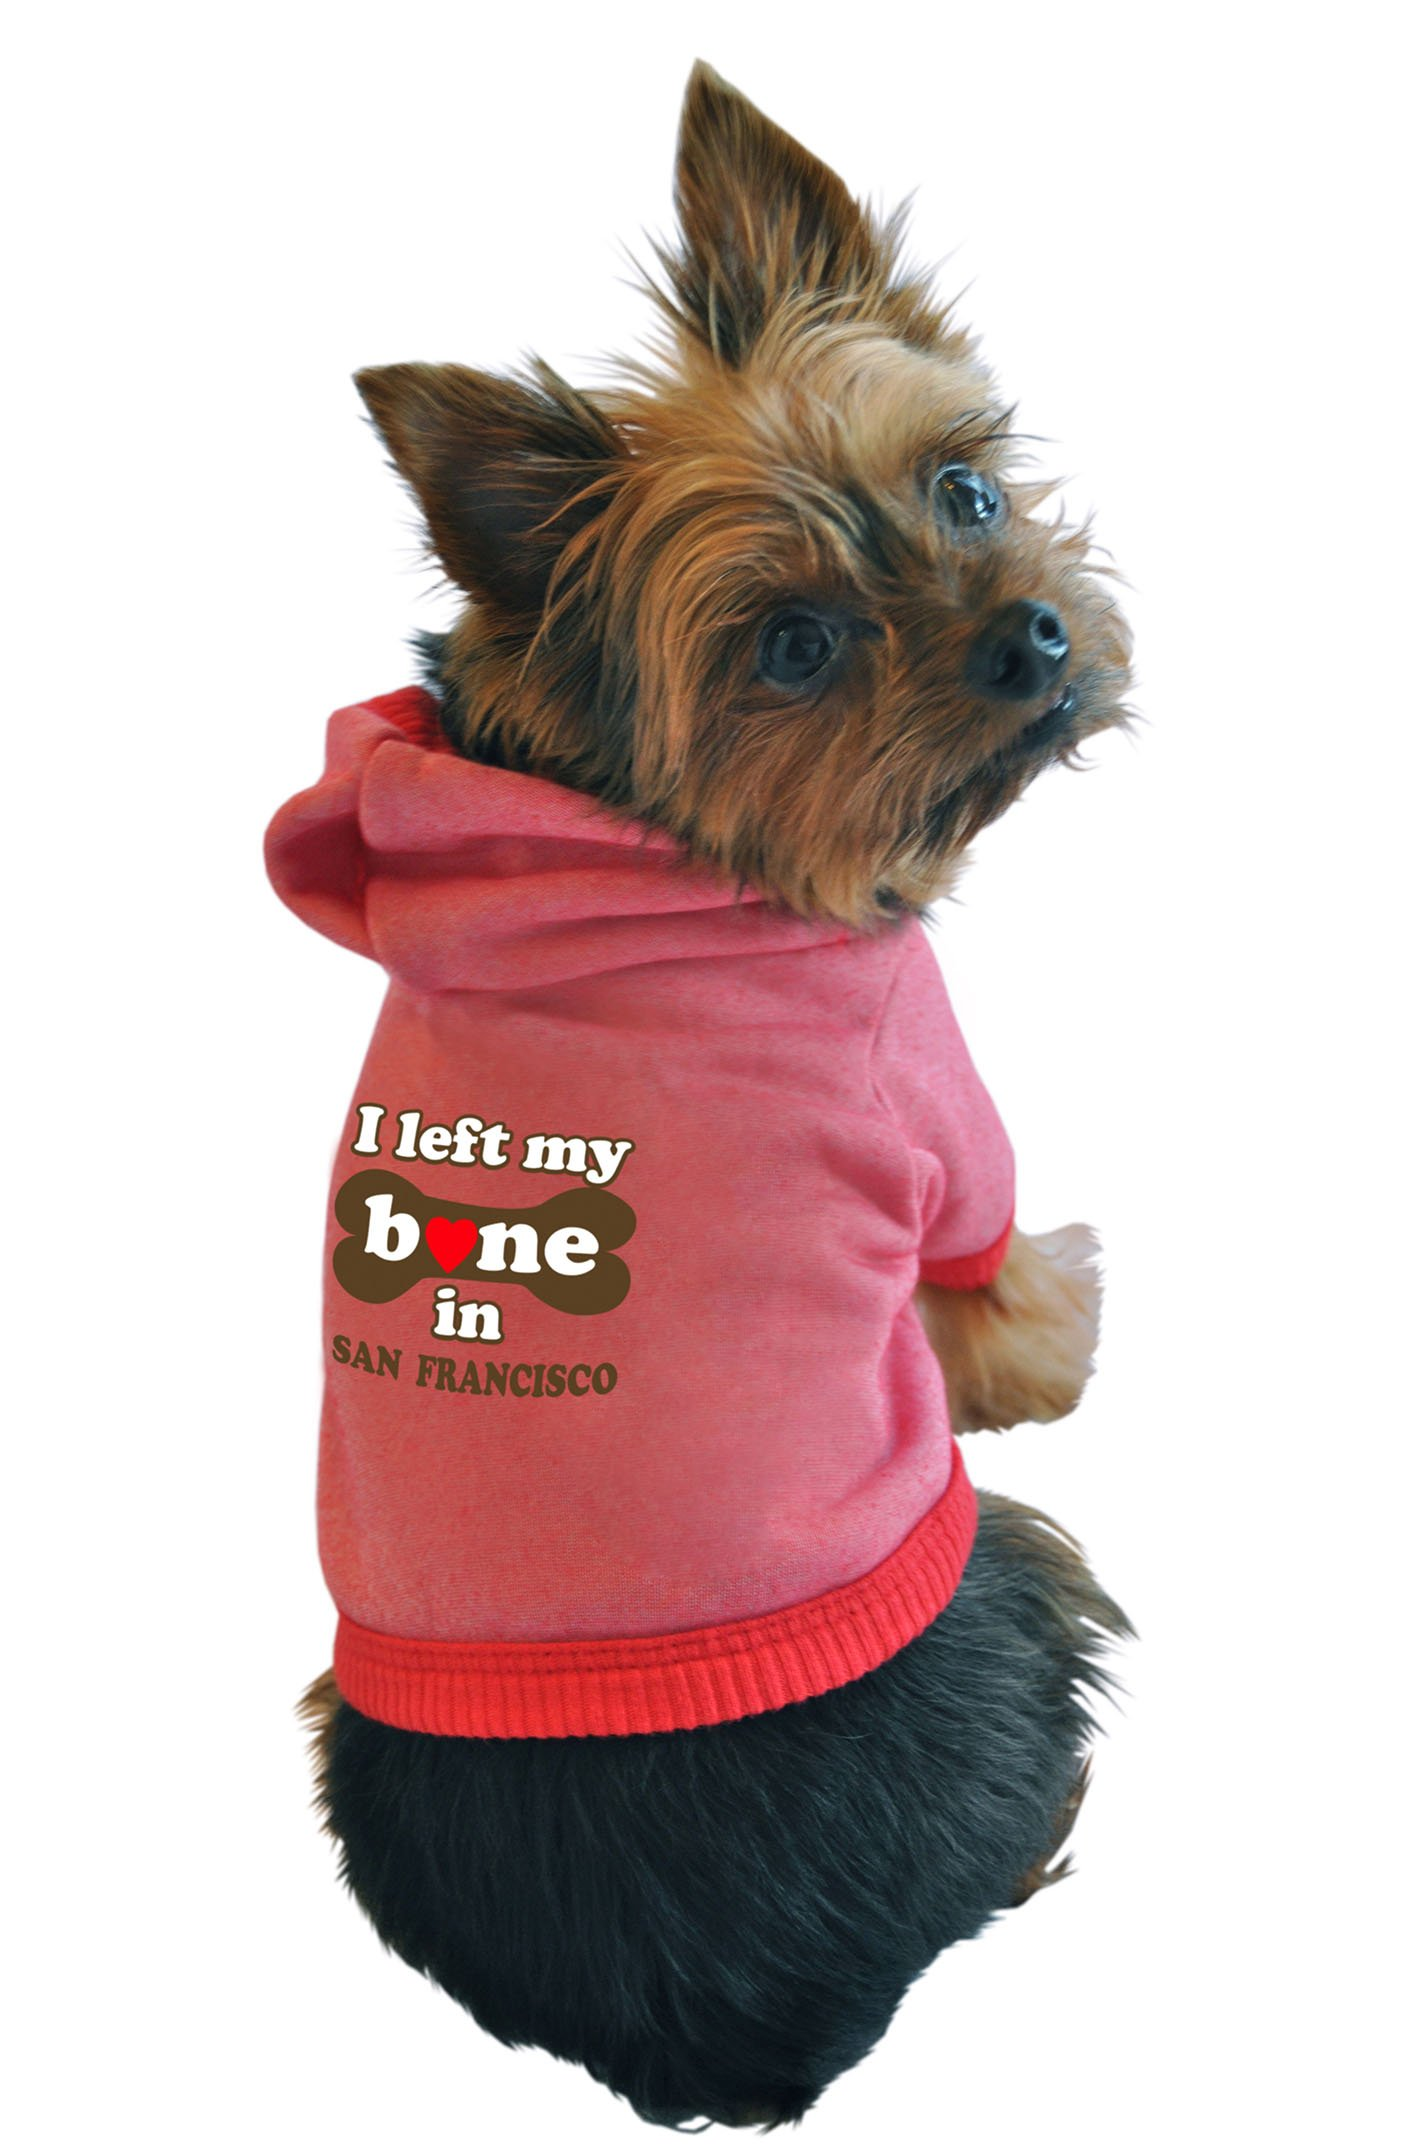 Ruff Ruff and Meow Dog Hoodie, I Left My Bone In San Francisco, Red, Medium